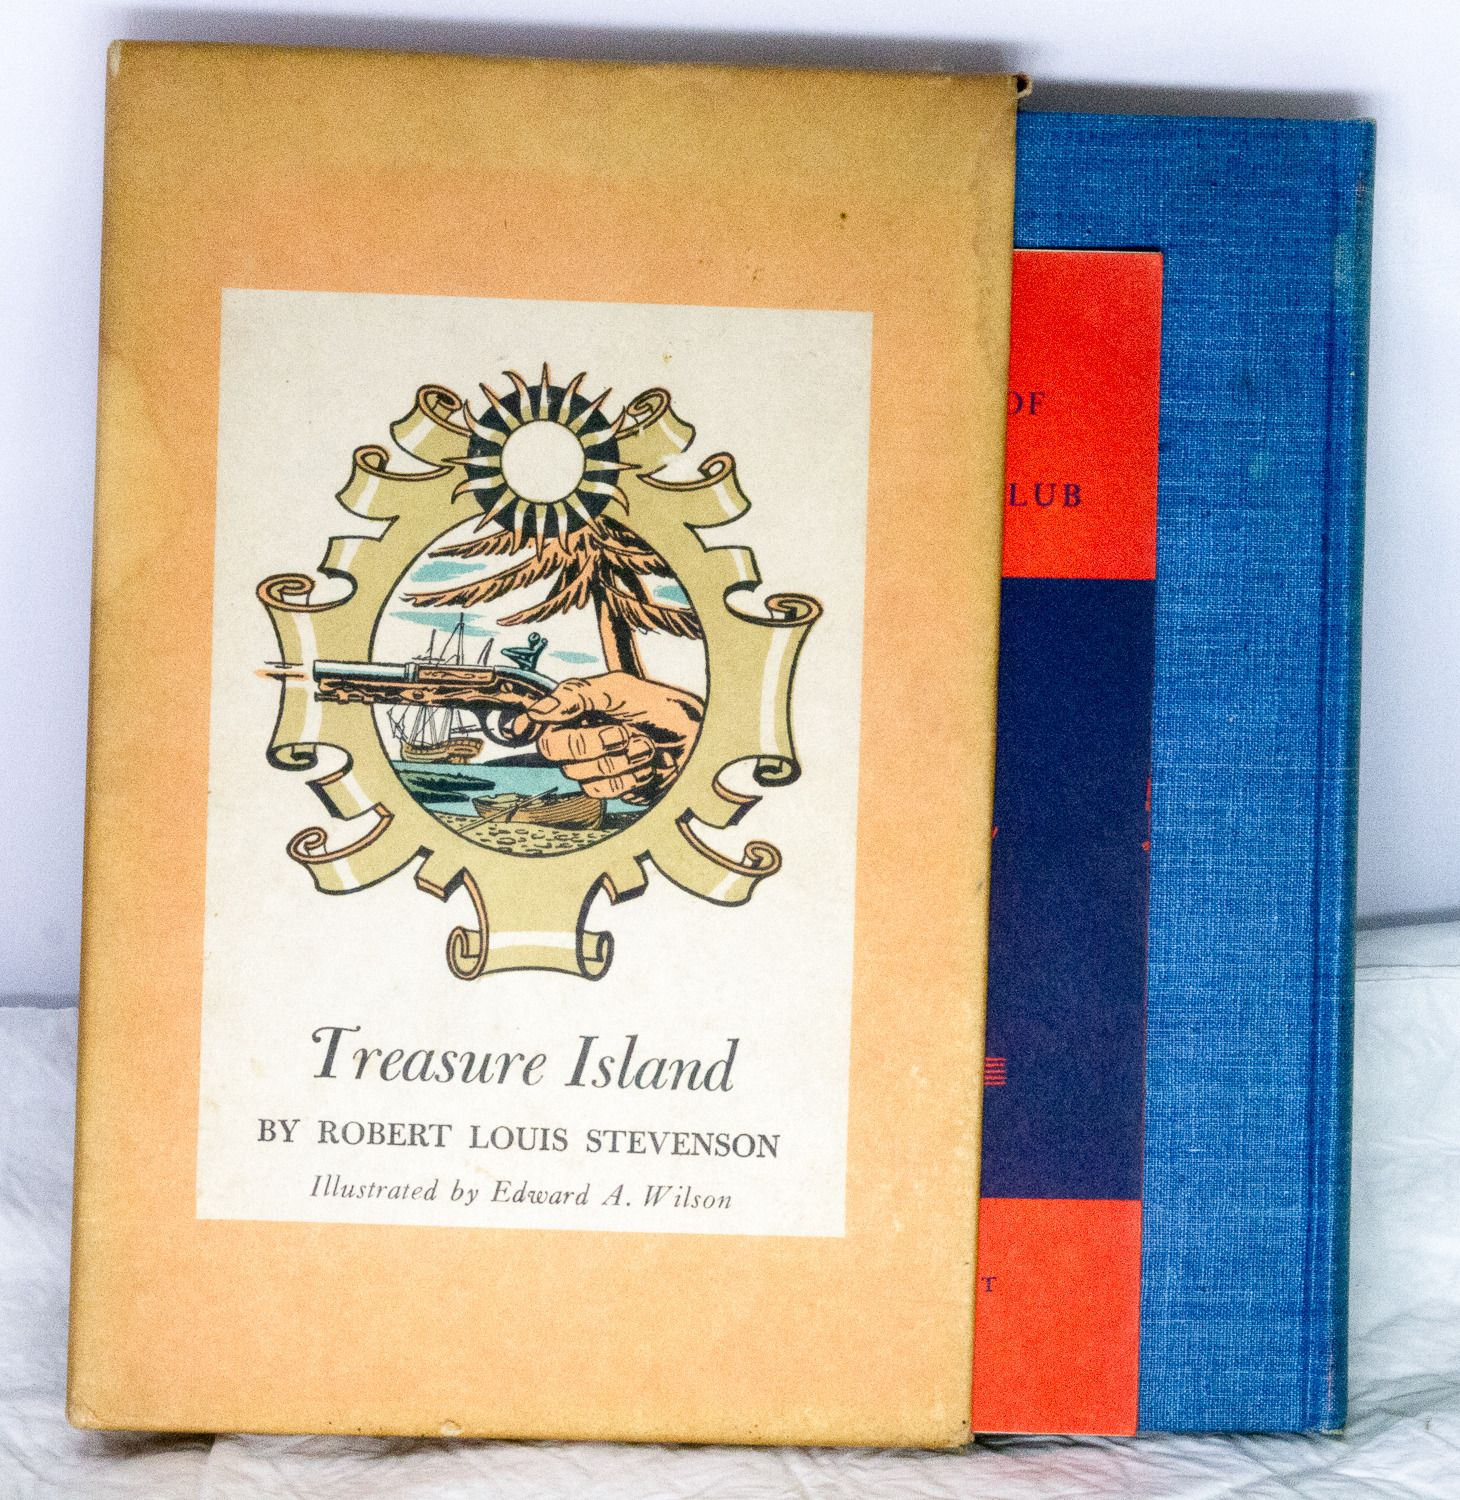 Special 1941 Heritage Illustrated Bookshelf Edition Of Treasure Island With Slip Cover.  Condition (Book/Dust Cover) VG/G - SOLD!